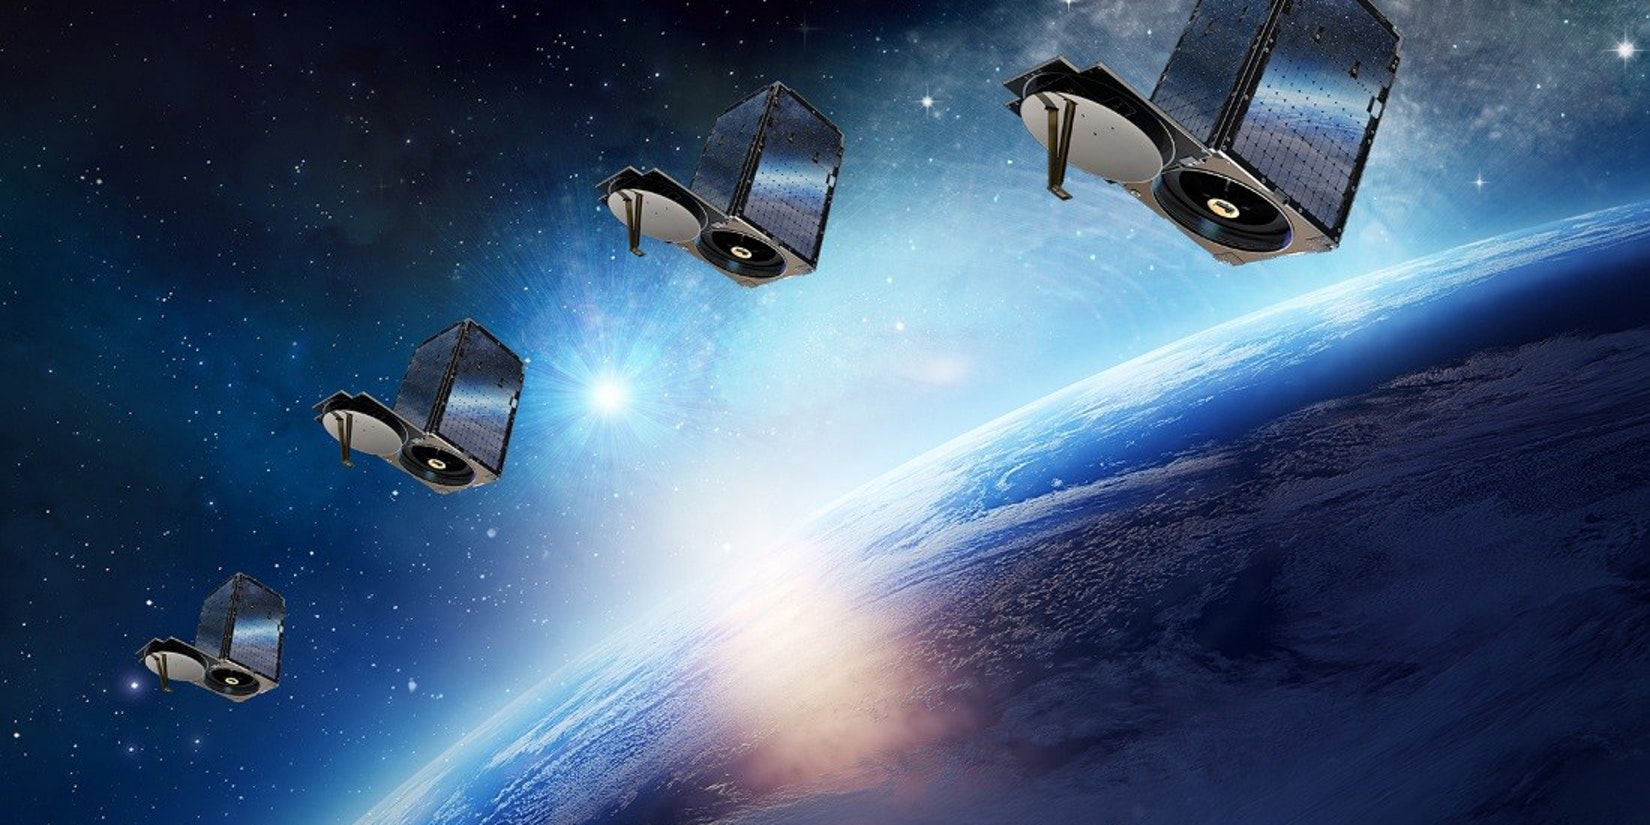 Google launched addition satellites as part of its SkySat program.